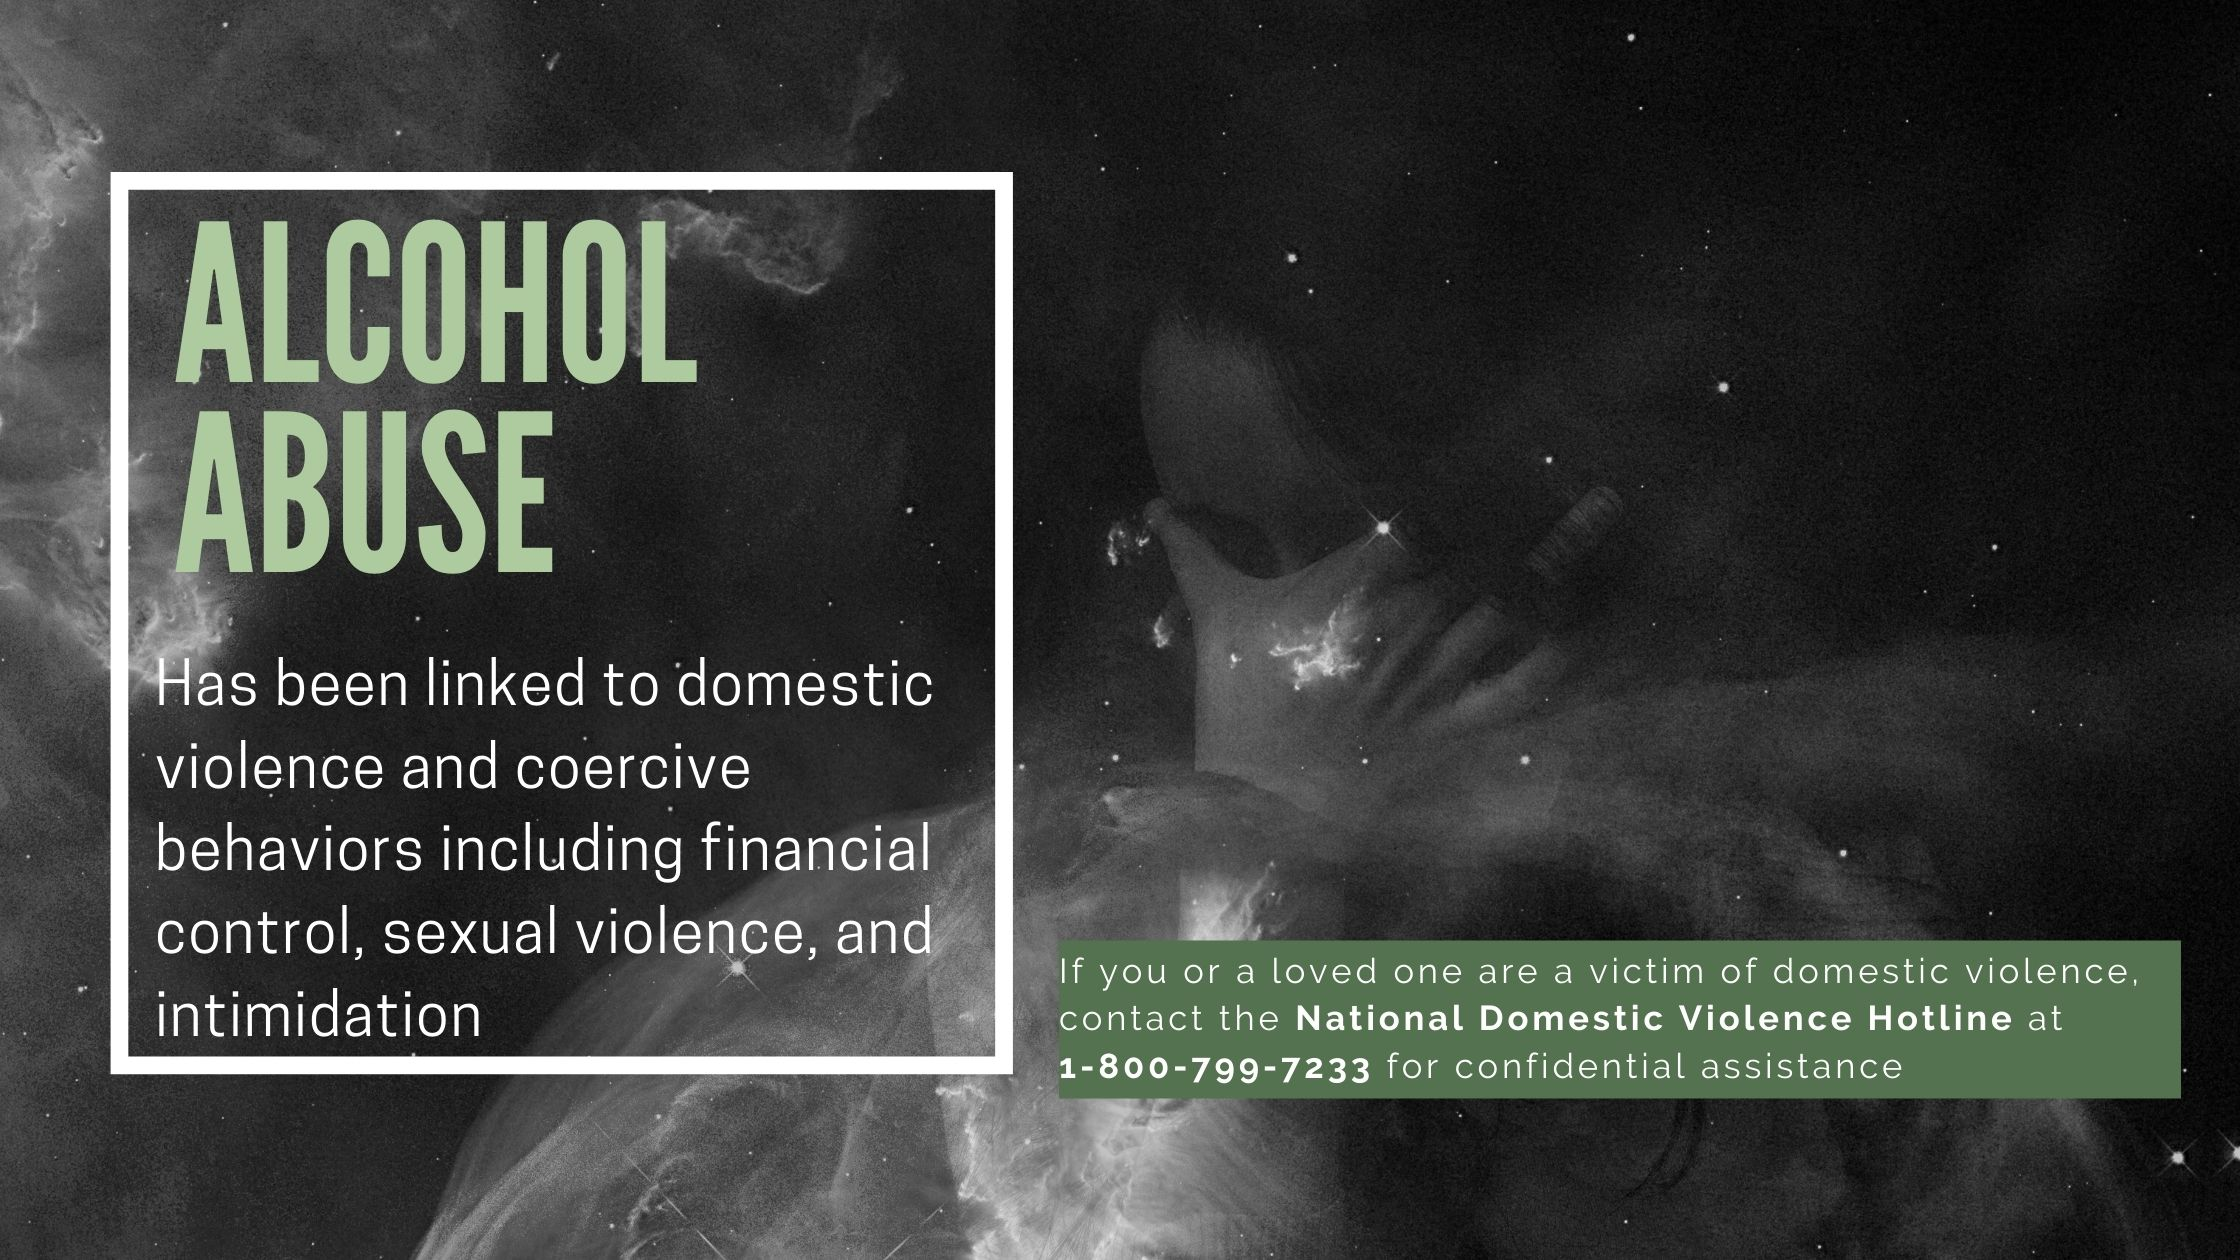 Addiction and domestic violence, interpersonal violence